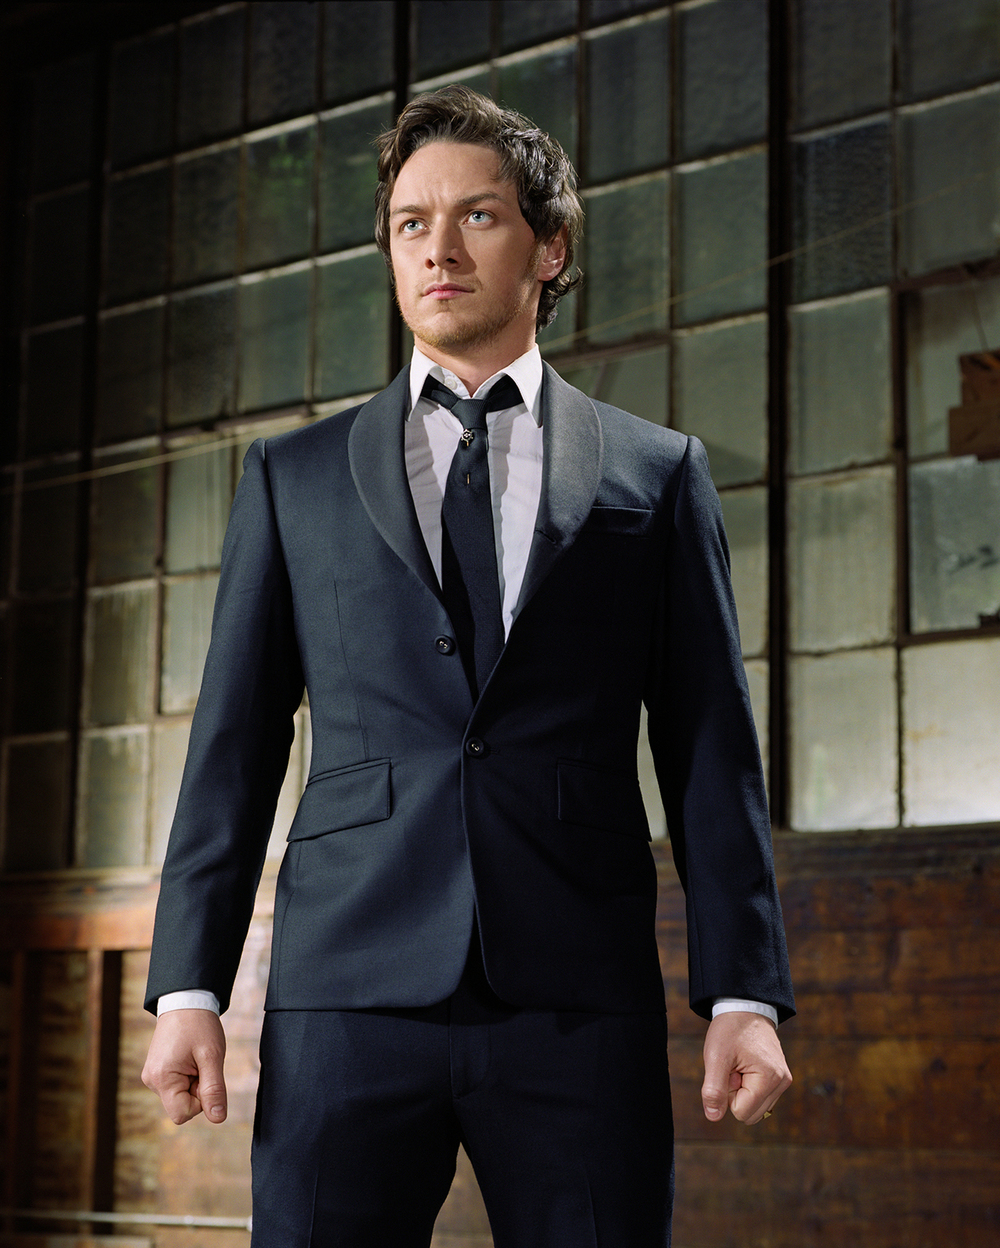 James McAvoy_6E-04_RAW copy.jpg